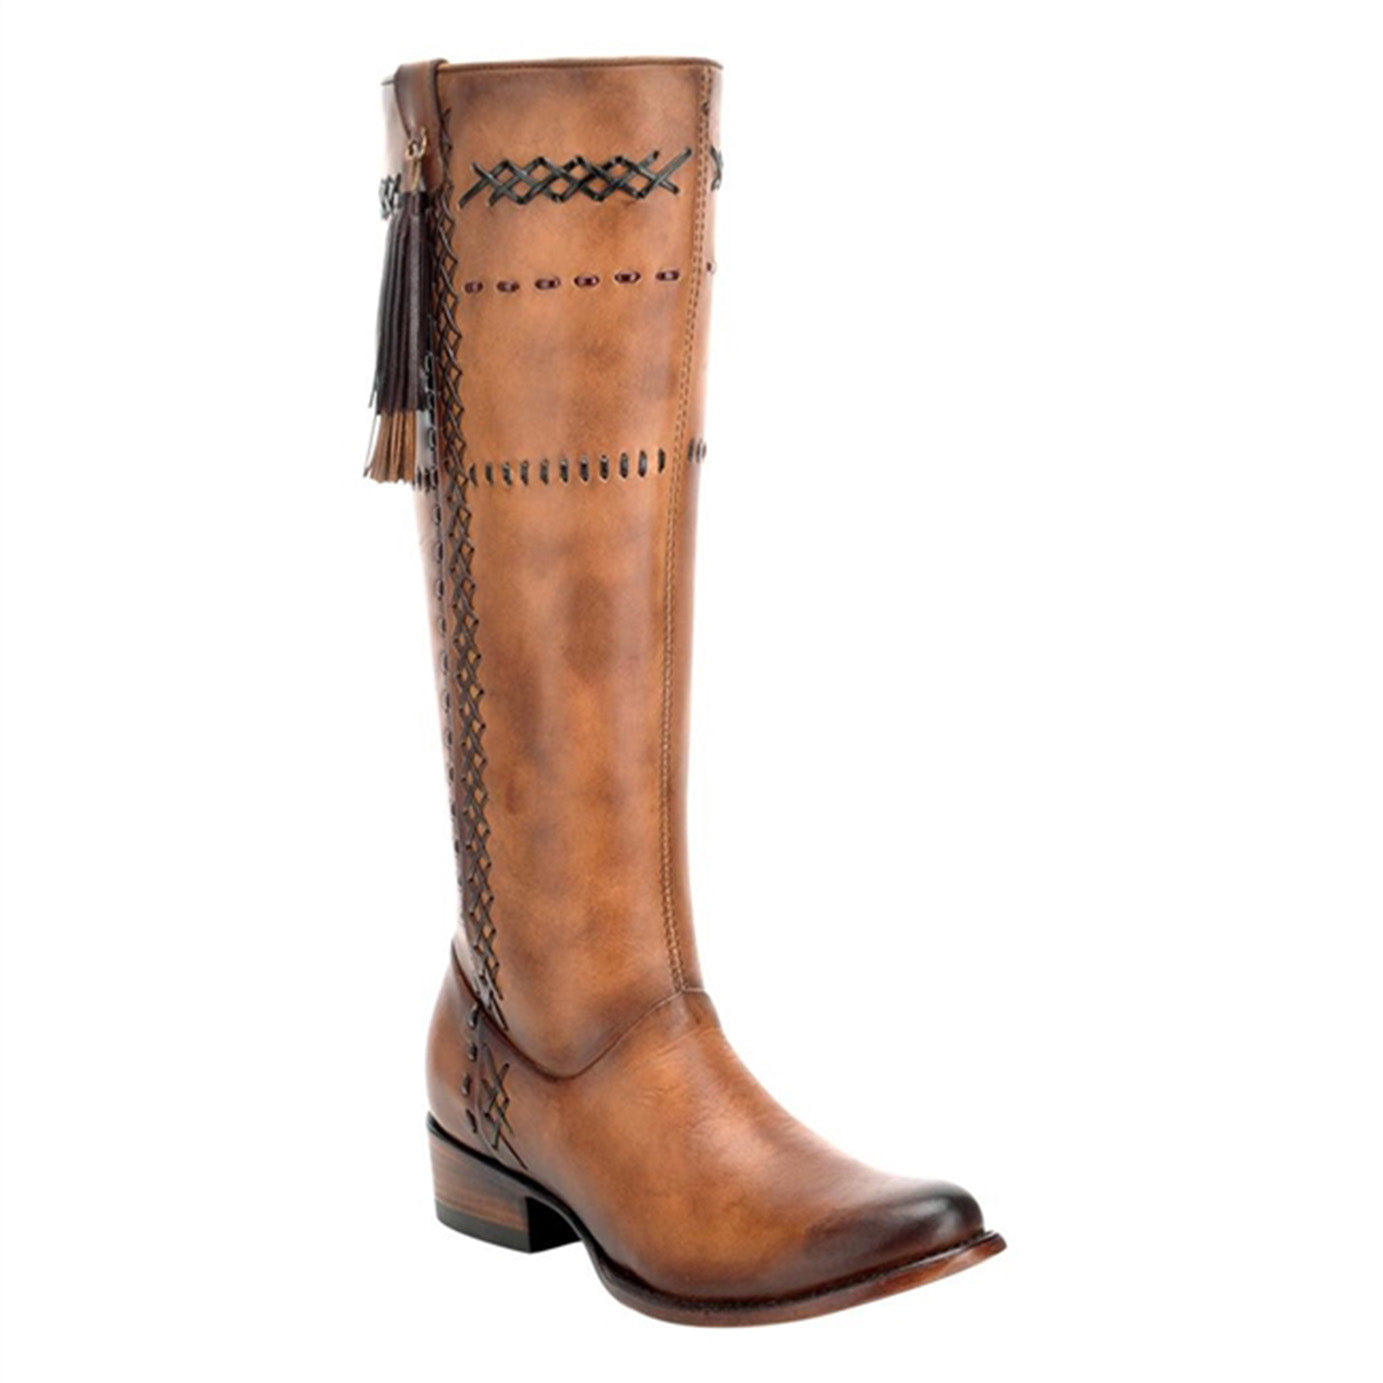 Cuadra Ladies Res Crust Biza Arena Tall Boot - 1X2XCS